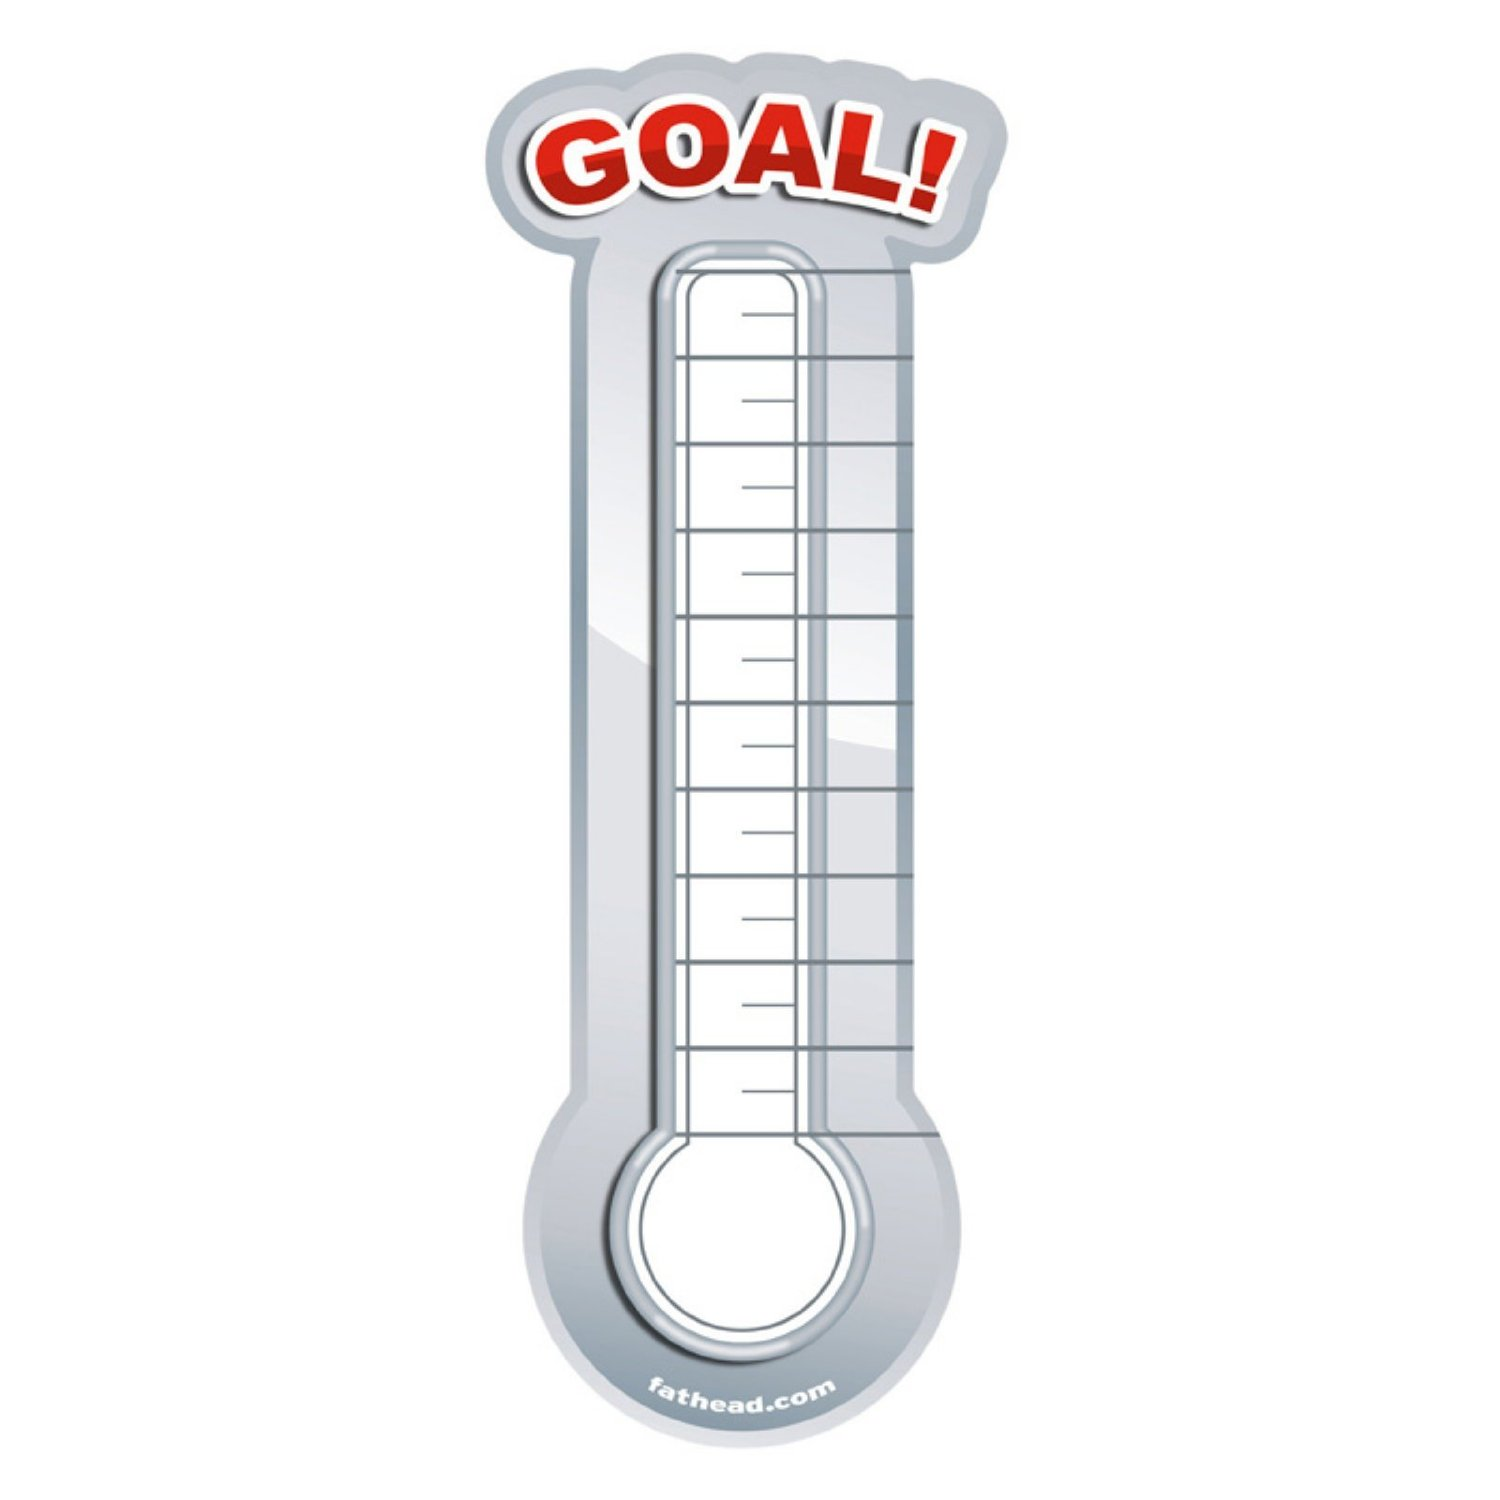 It's just an image of Handy Printable Fundraiser Thermometer